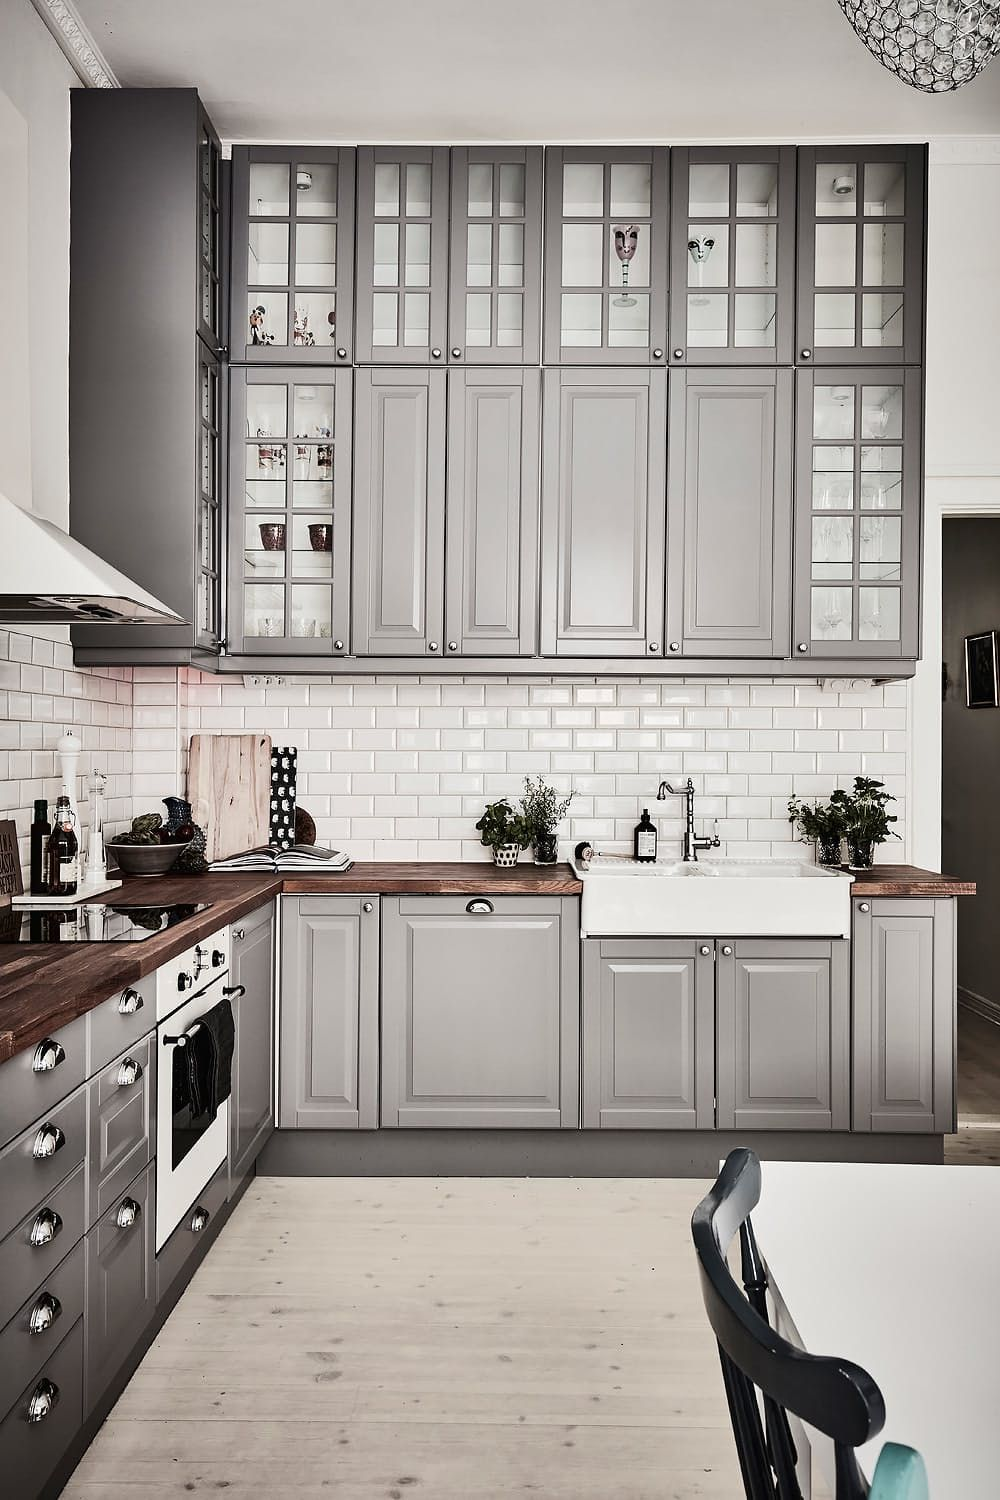 Inspiring Kitchens You Wonu0027t Believe Are IKEA   Bodbyn Cabinet Fronts Give  This IKEA